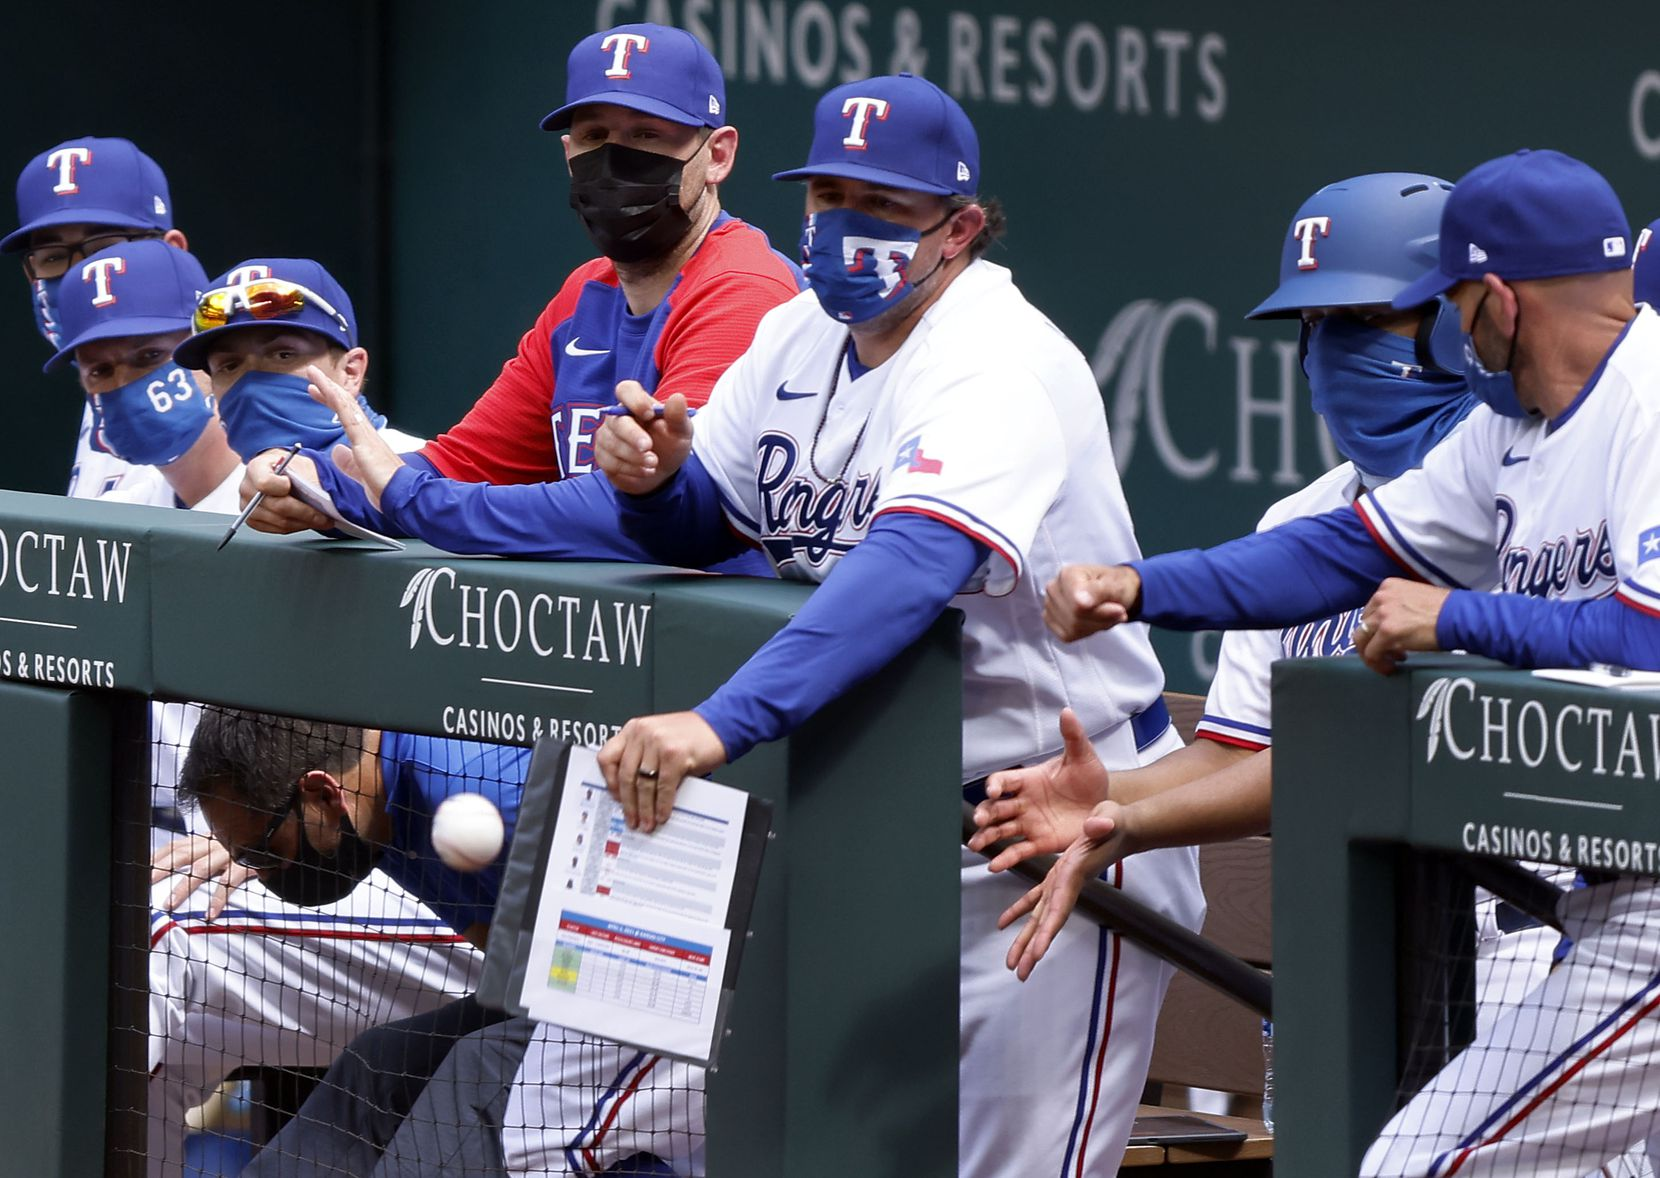 A Texas Rangers coach deflects a foul ball off his clip board during their Opening Day game at Globe Life Field in Arlington, Monday, April 5, 2021. (Tom Fox/The Dallas Morning News)